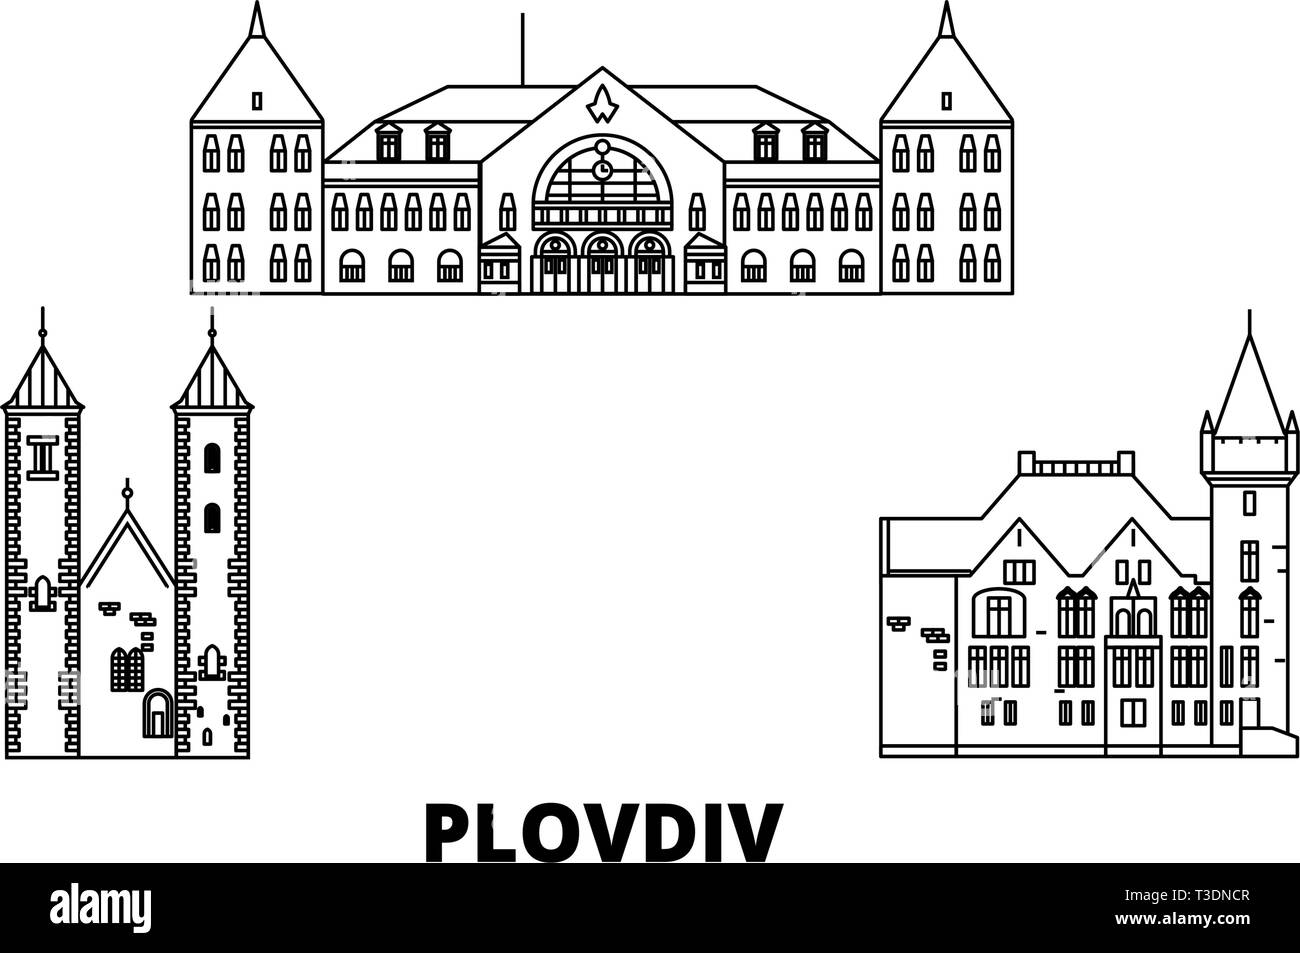 Bulgaria, Plovdiv line travel skyline set. Bulgaria, Plovdiv outline city vector illustration, symbol, travel sights, landmarks. - Stock Vector